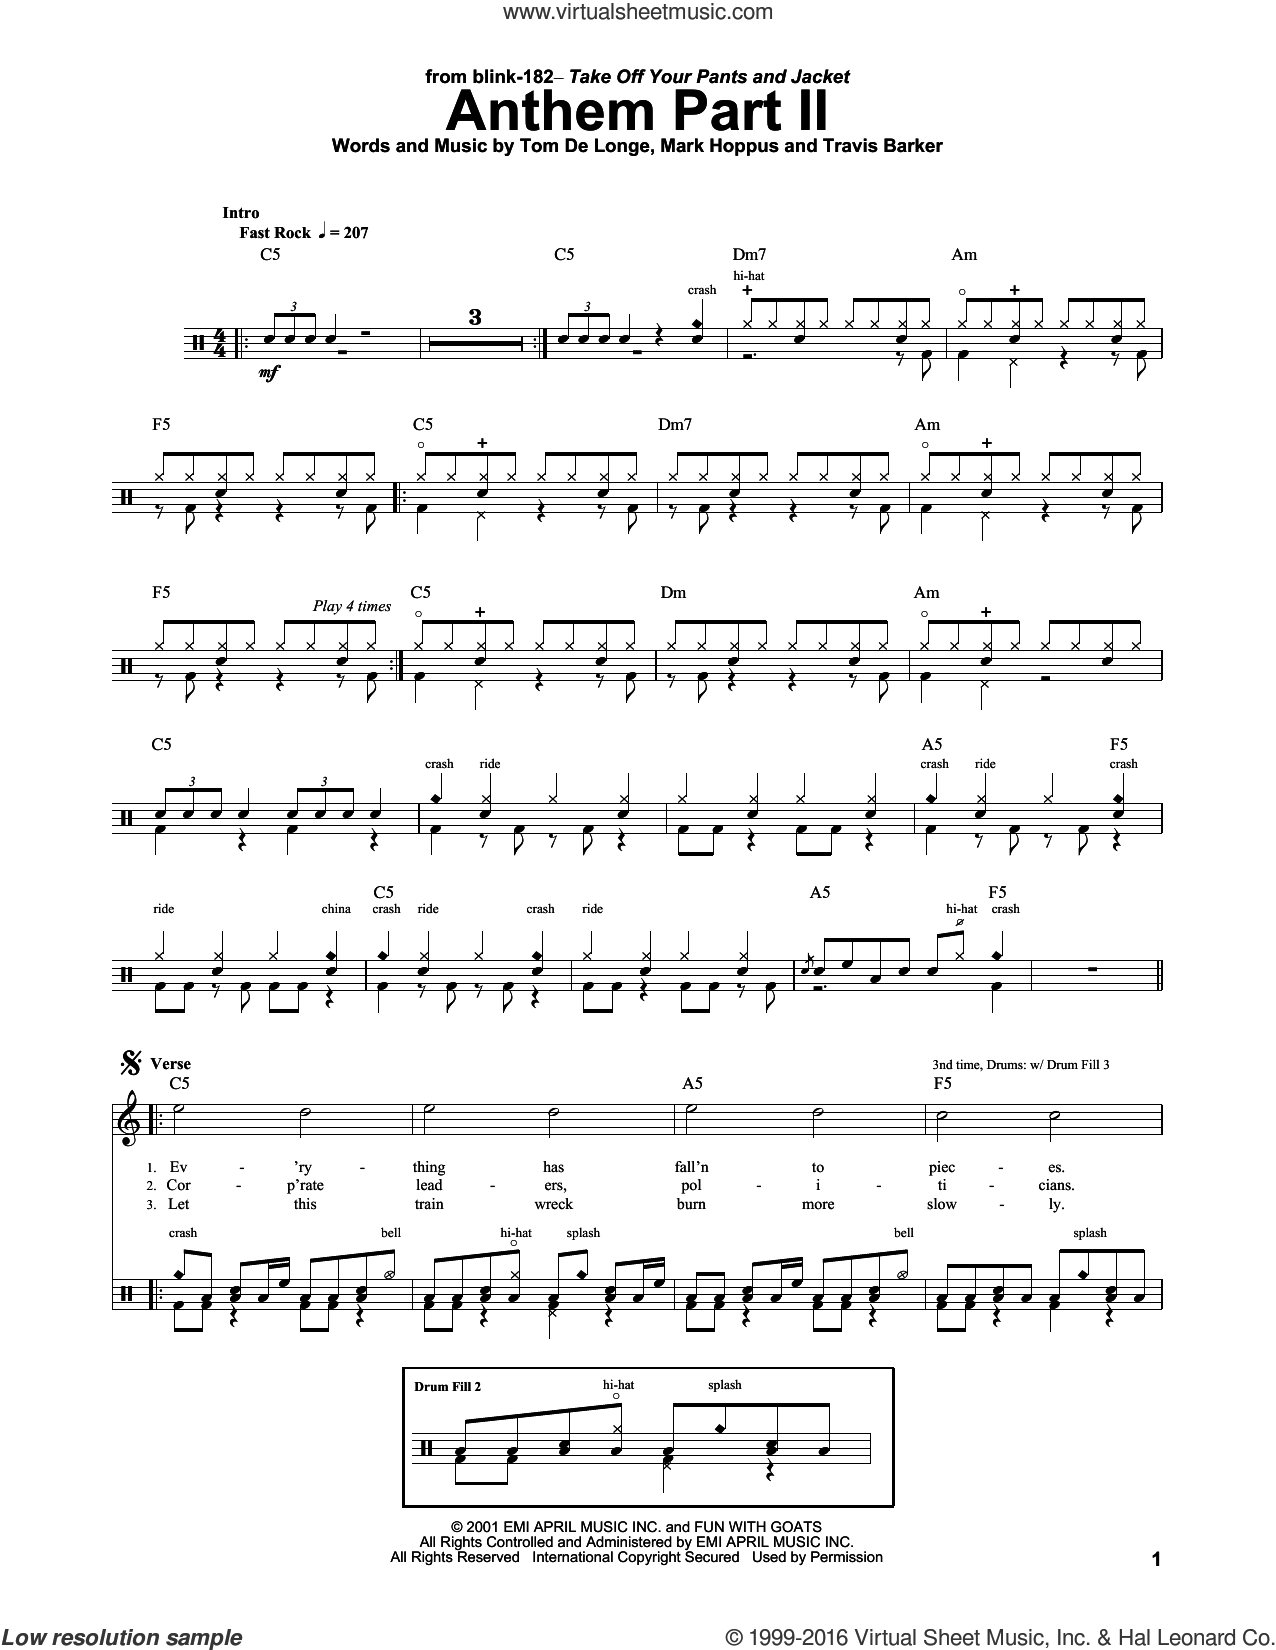 Anthem Part II sheet music for drums by Travis Barker, Mark Hoppus and Tom DeLonge. Score Image Preview.